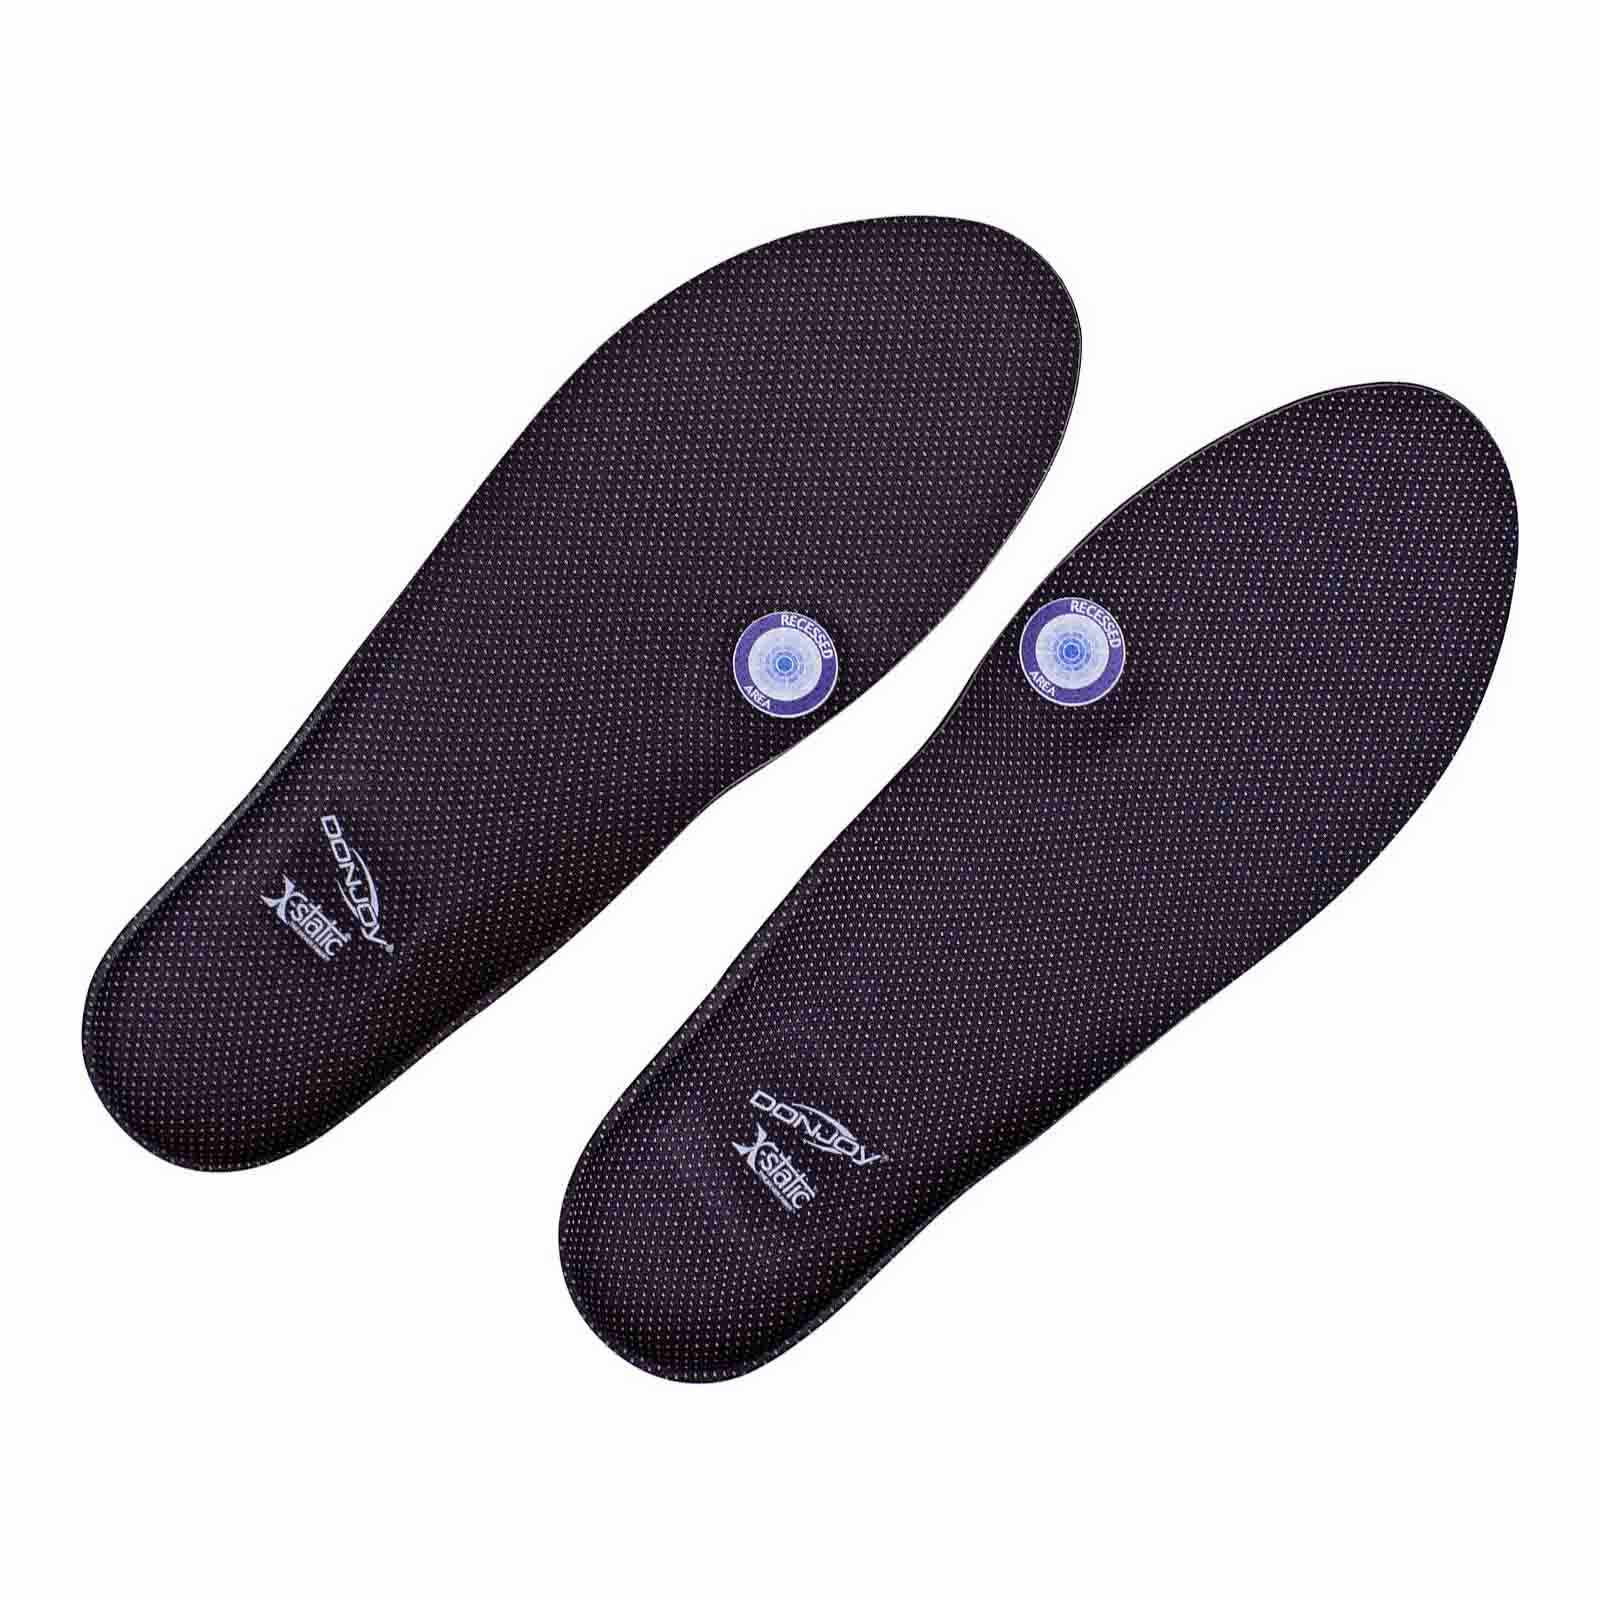 DonJoy Arch Rival Foot Orthotic, Size B